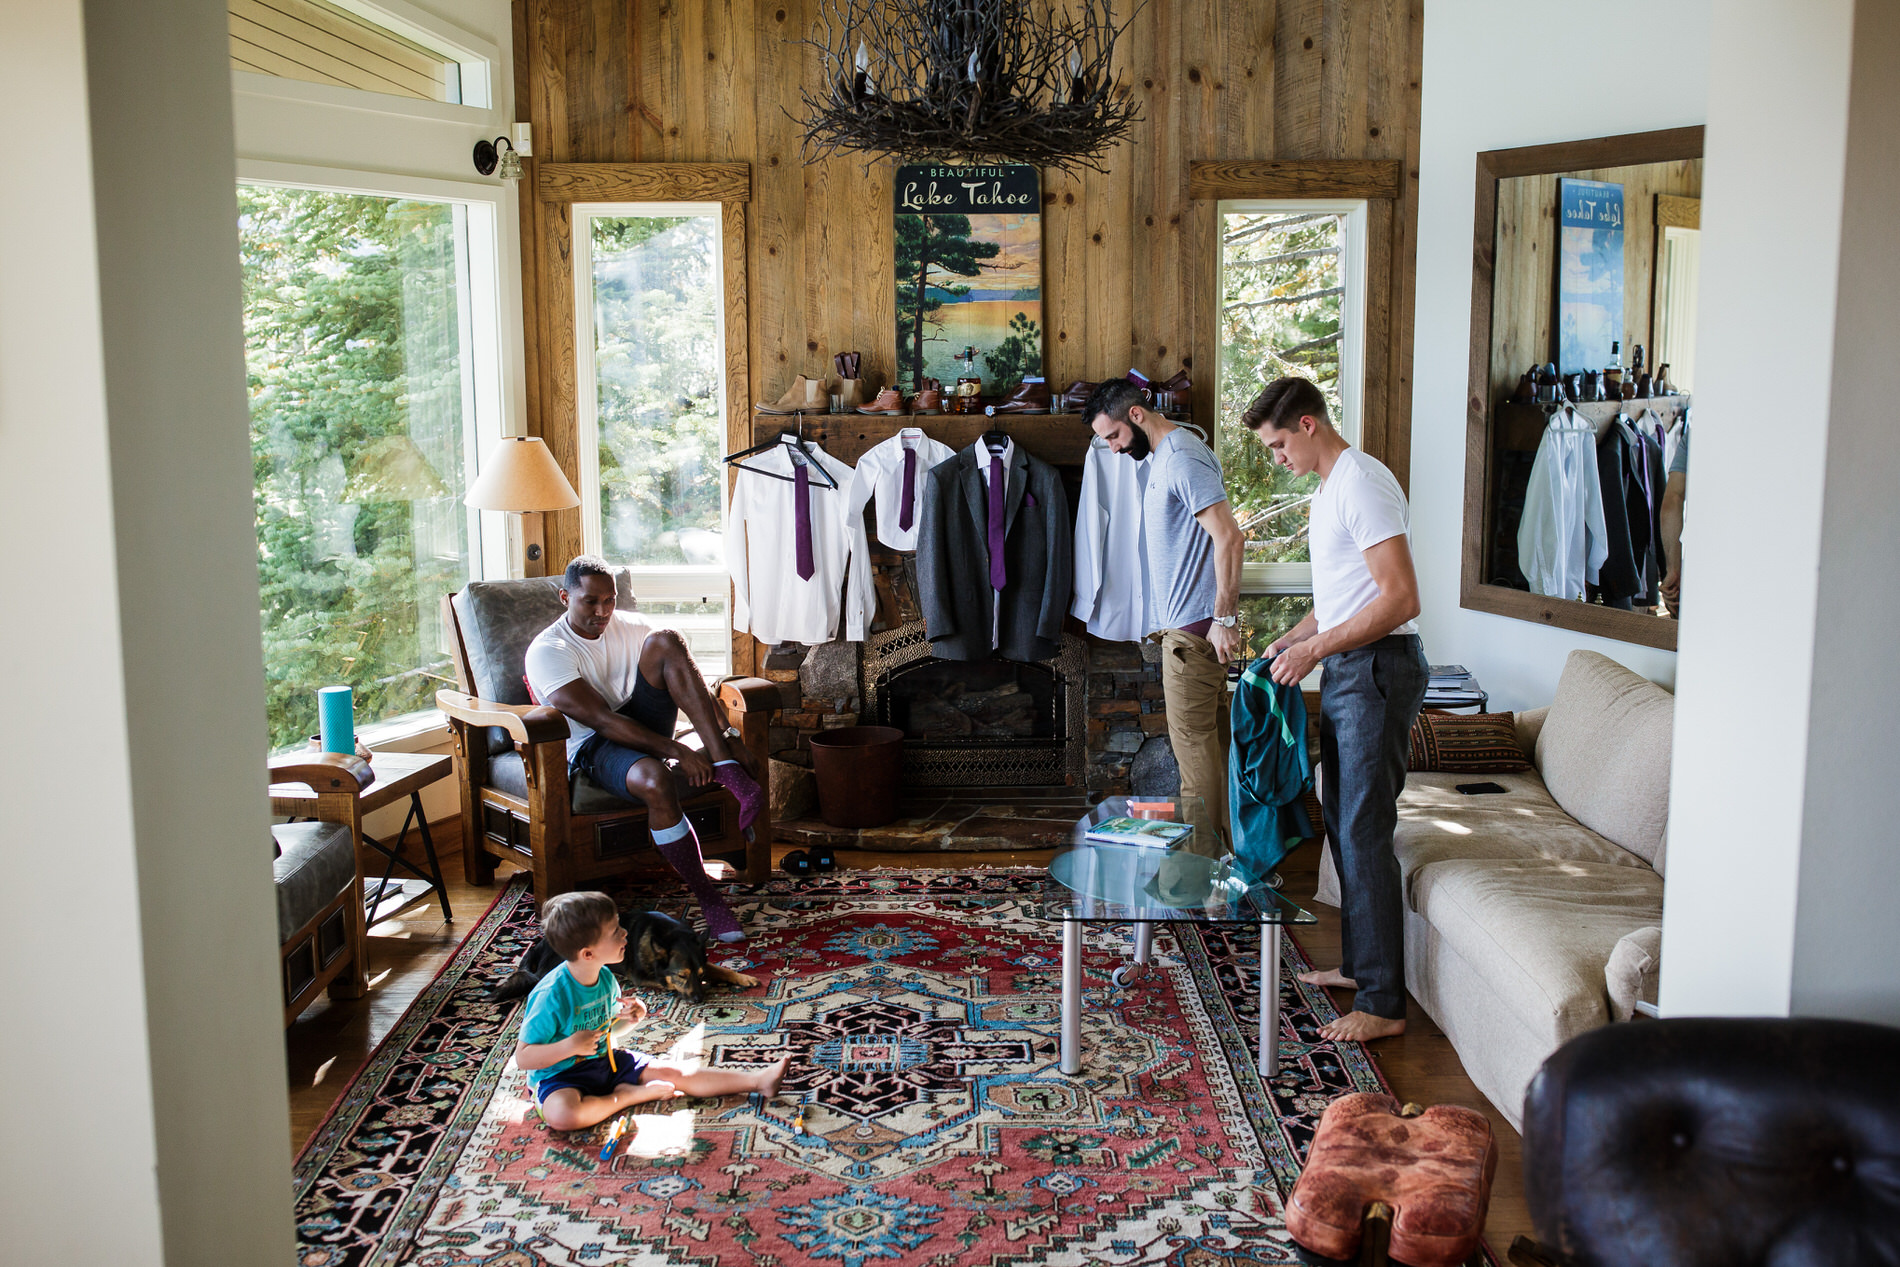 Tahoe City, California Elopement Picture | The groom, two friends, and the groom's son get dressed for their small wedding